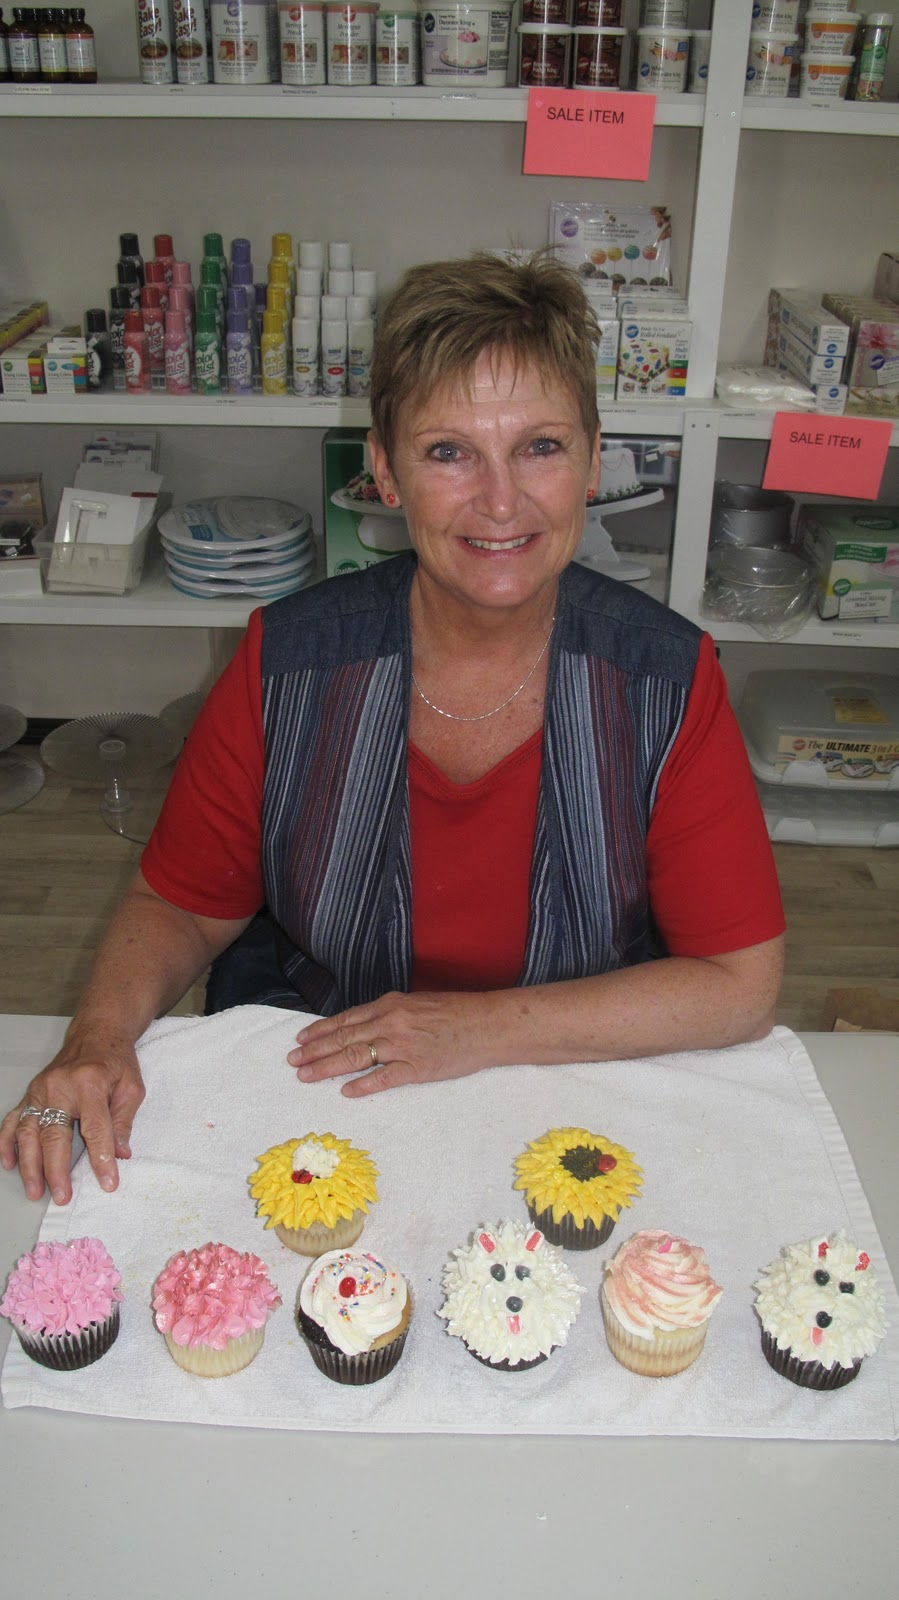 Elly S Studio Cake Design Chilliwack : Elly s Studio of Cake Design: Girls Day Out Cupcake Class